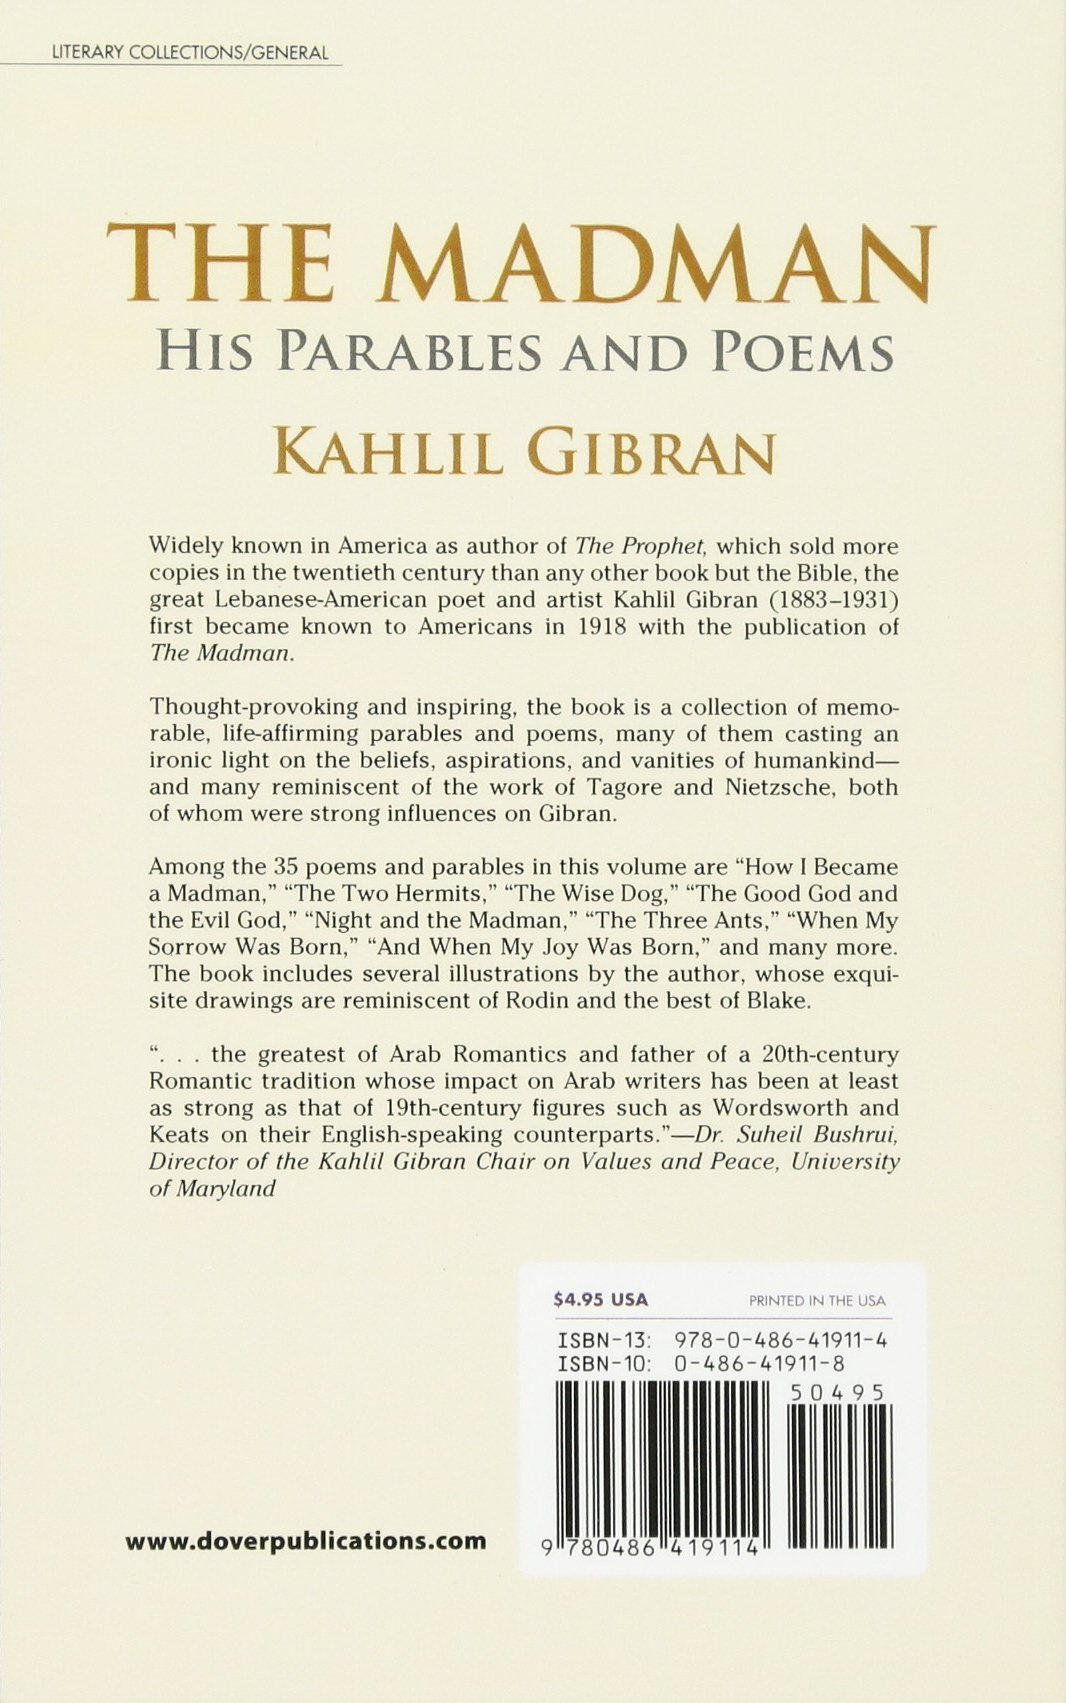 The Madman: His Parables and Poems: Kahlil Gibran